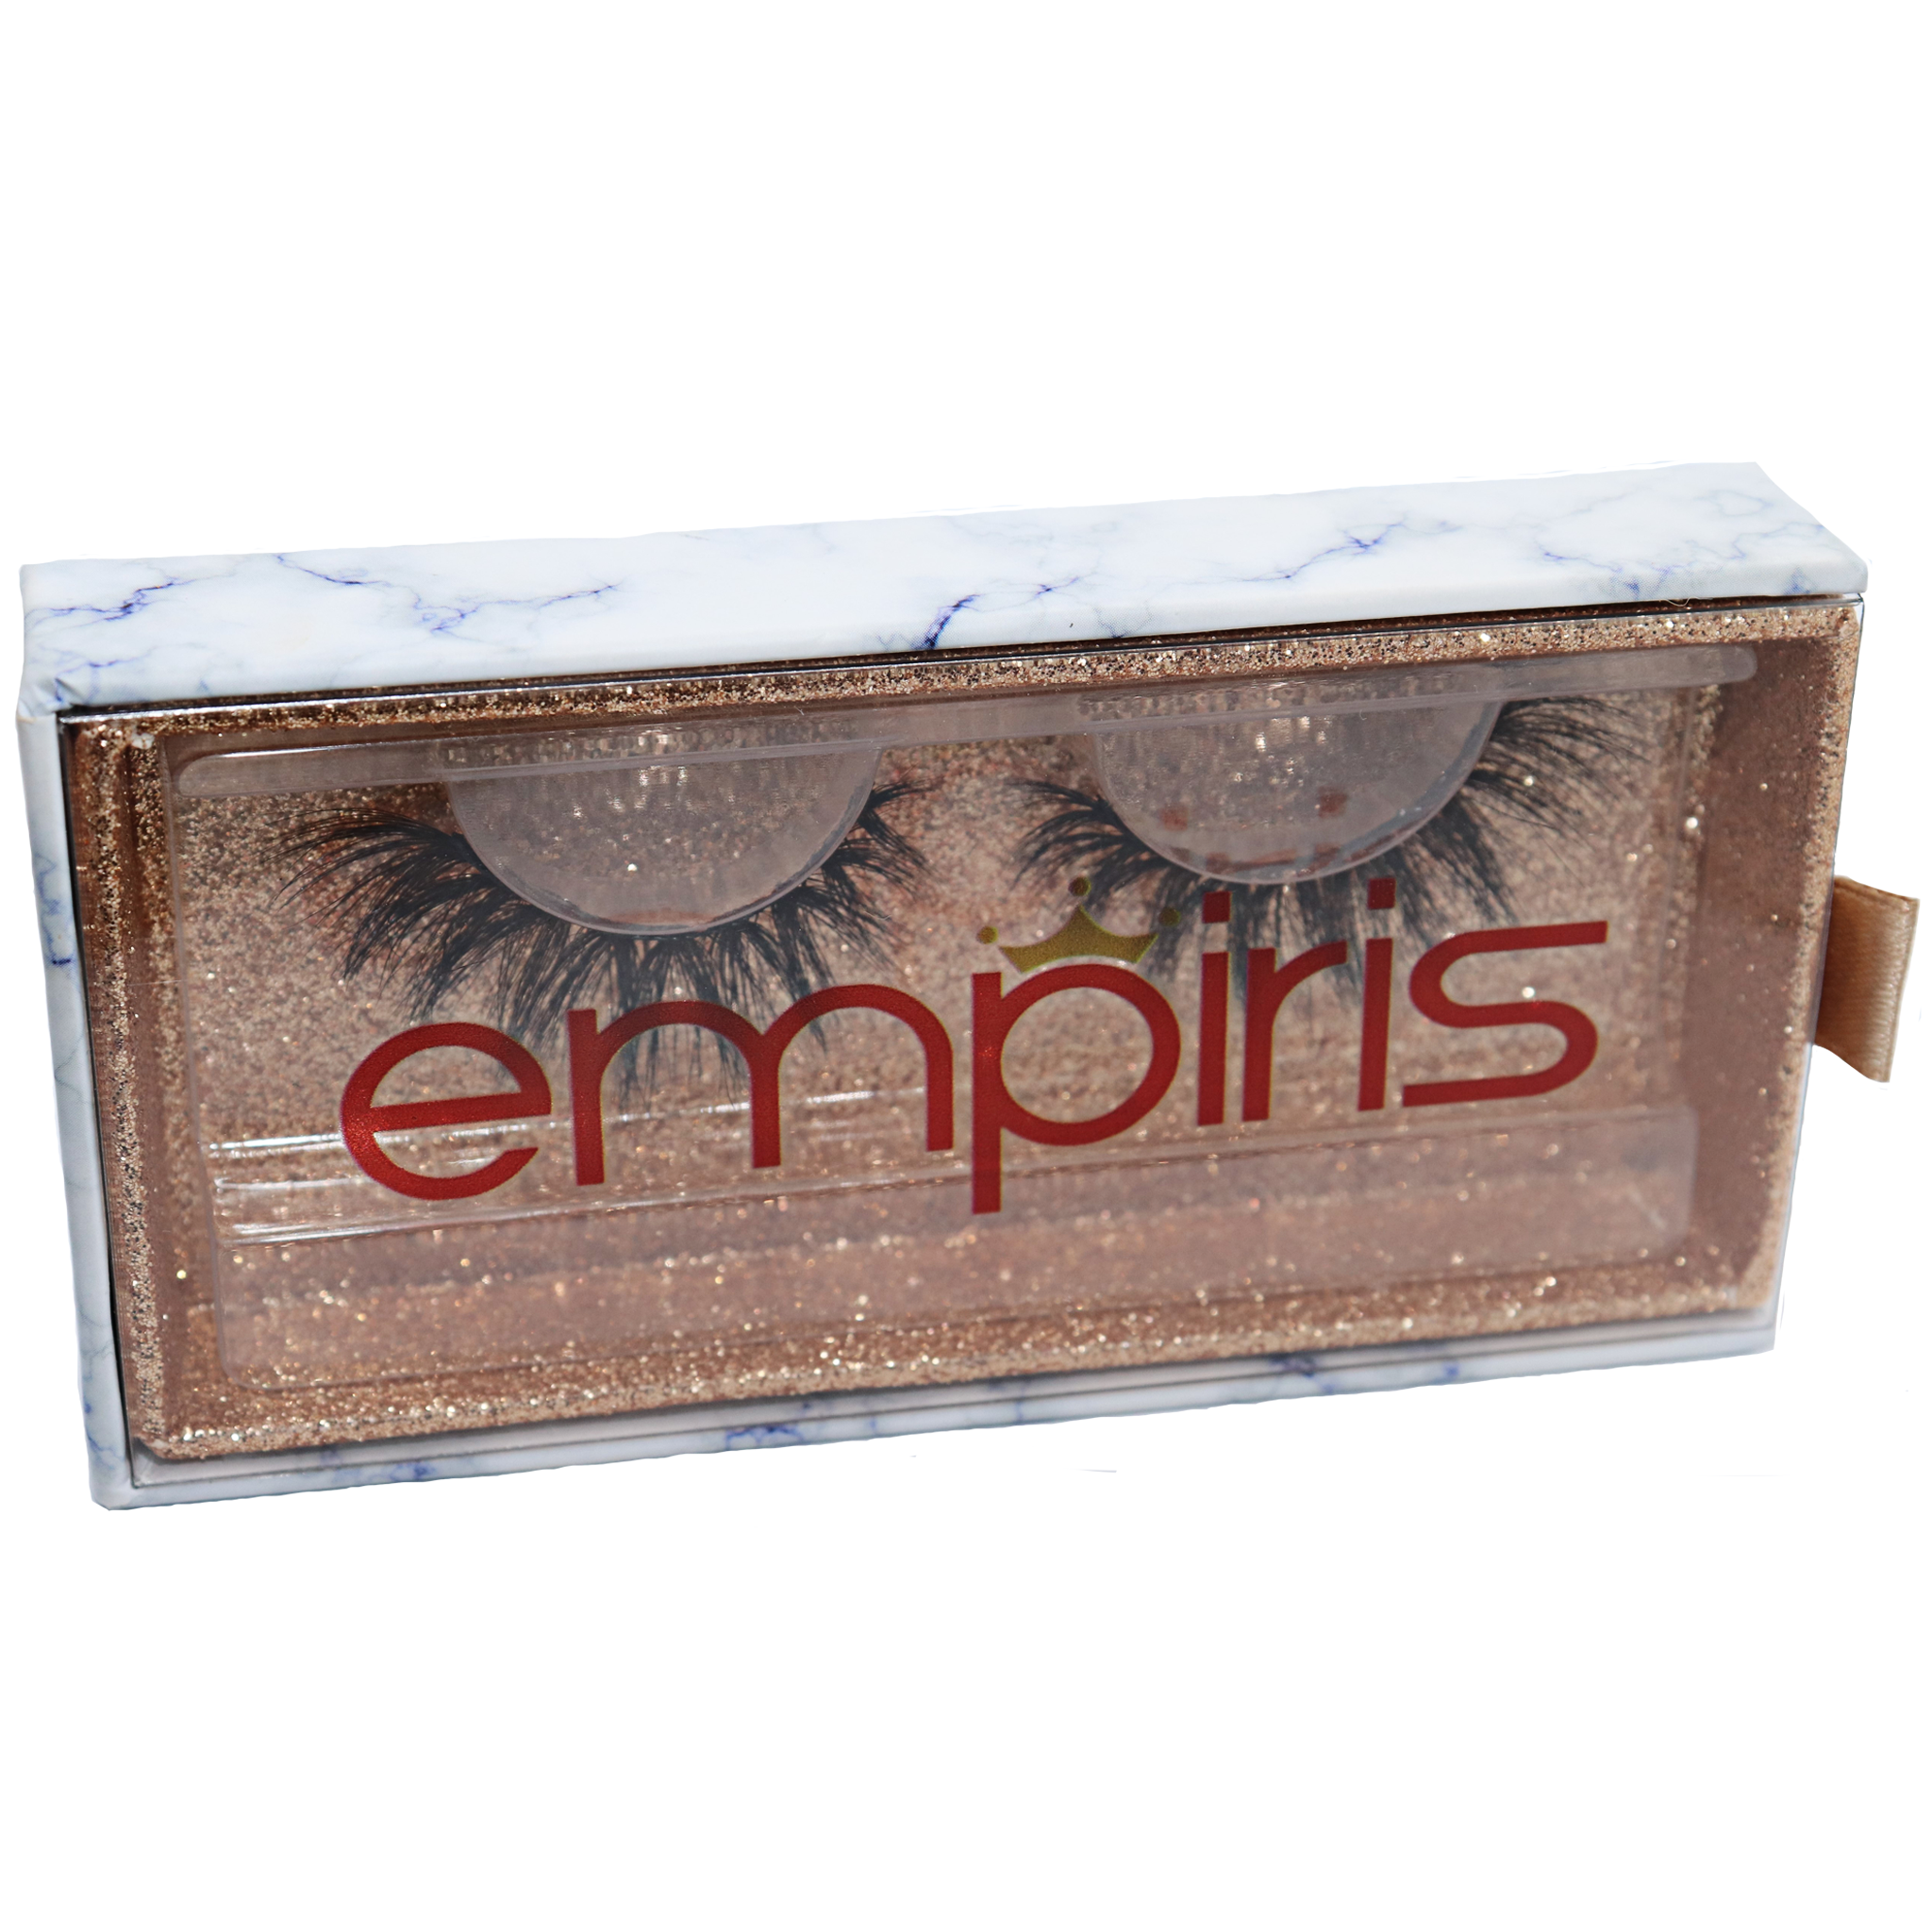 Empiris Product Photography